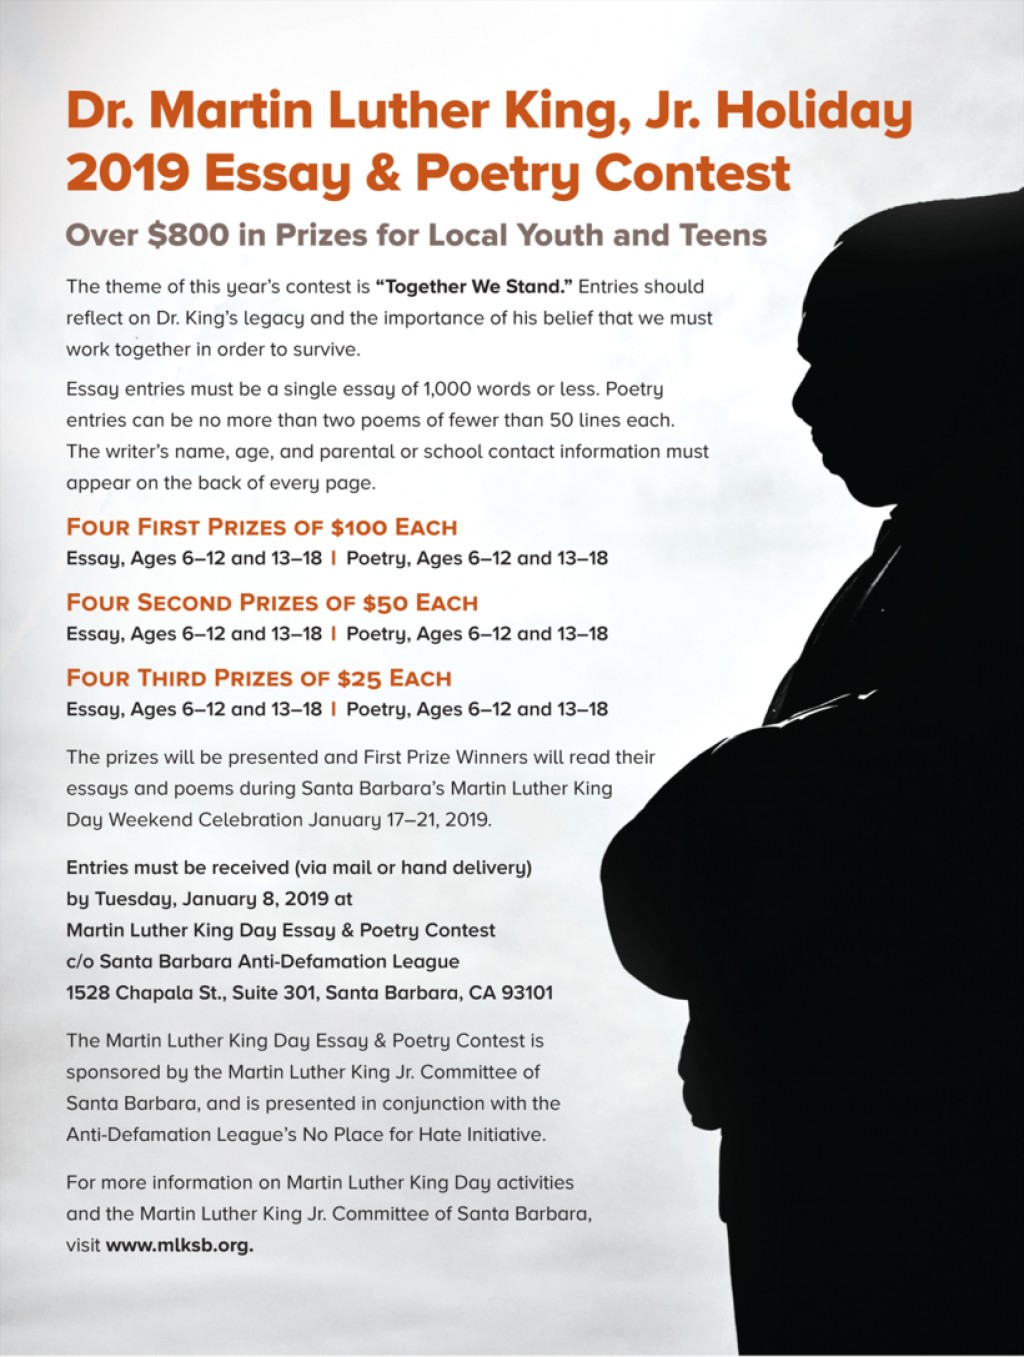 018 Essay Poetry Flyer Example Best Mlk Ideas Intro Contest Winners 2018 Large